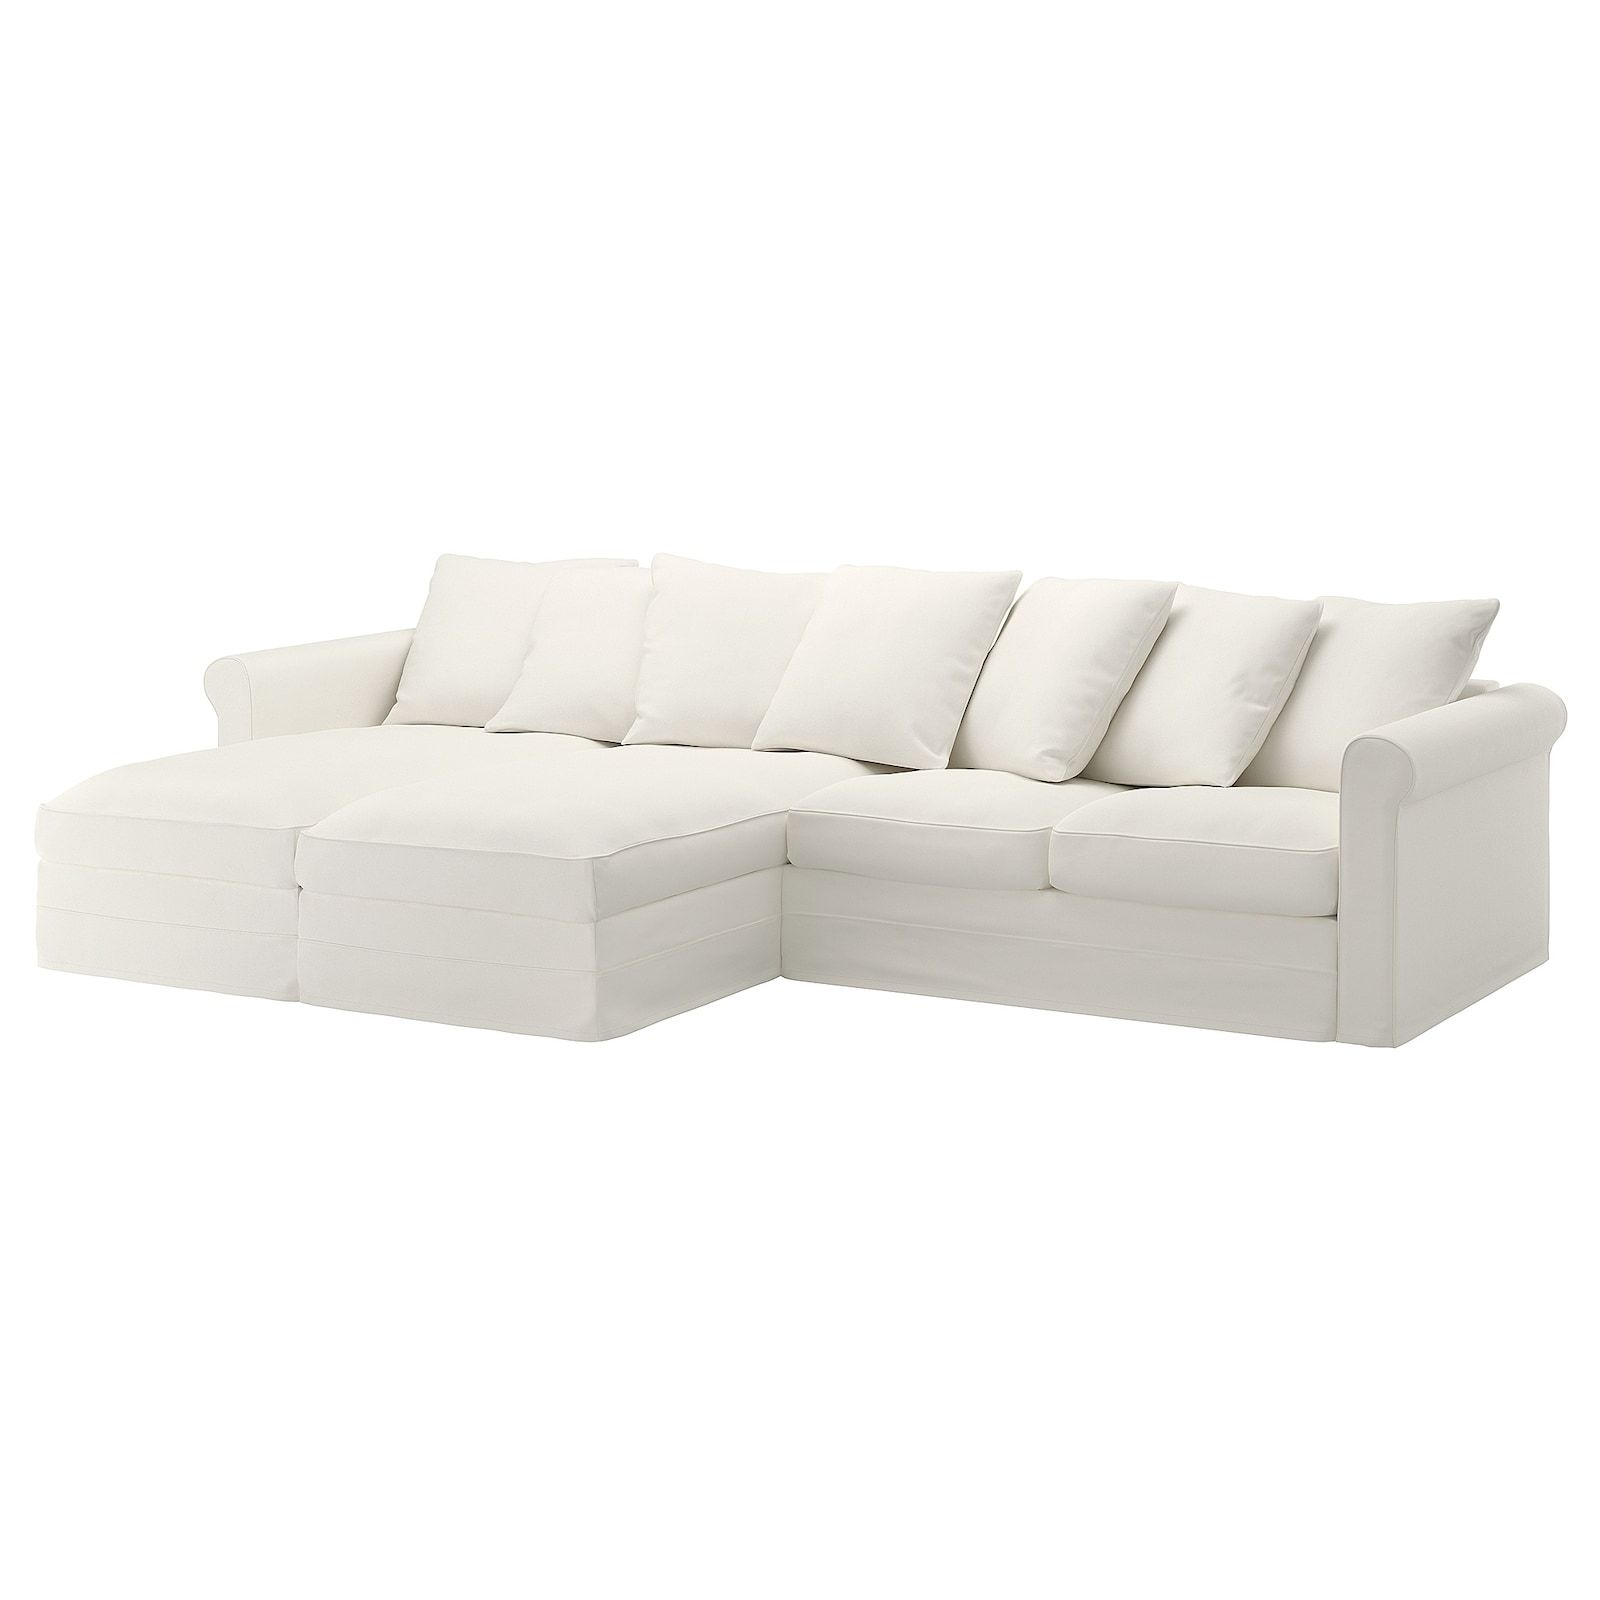 Harlanda Sectional 4 Seat With Chaise Inseros White Shop Here Ikea In 2020 Sofa Armchair Sectional Sofa